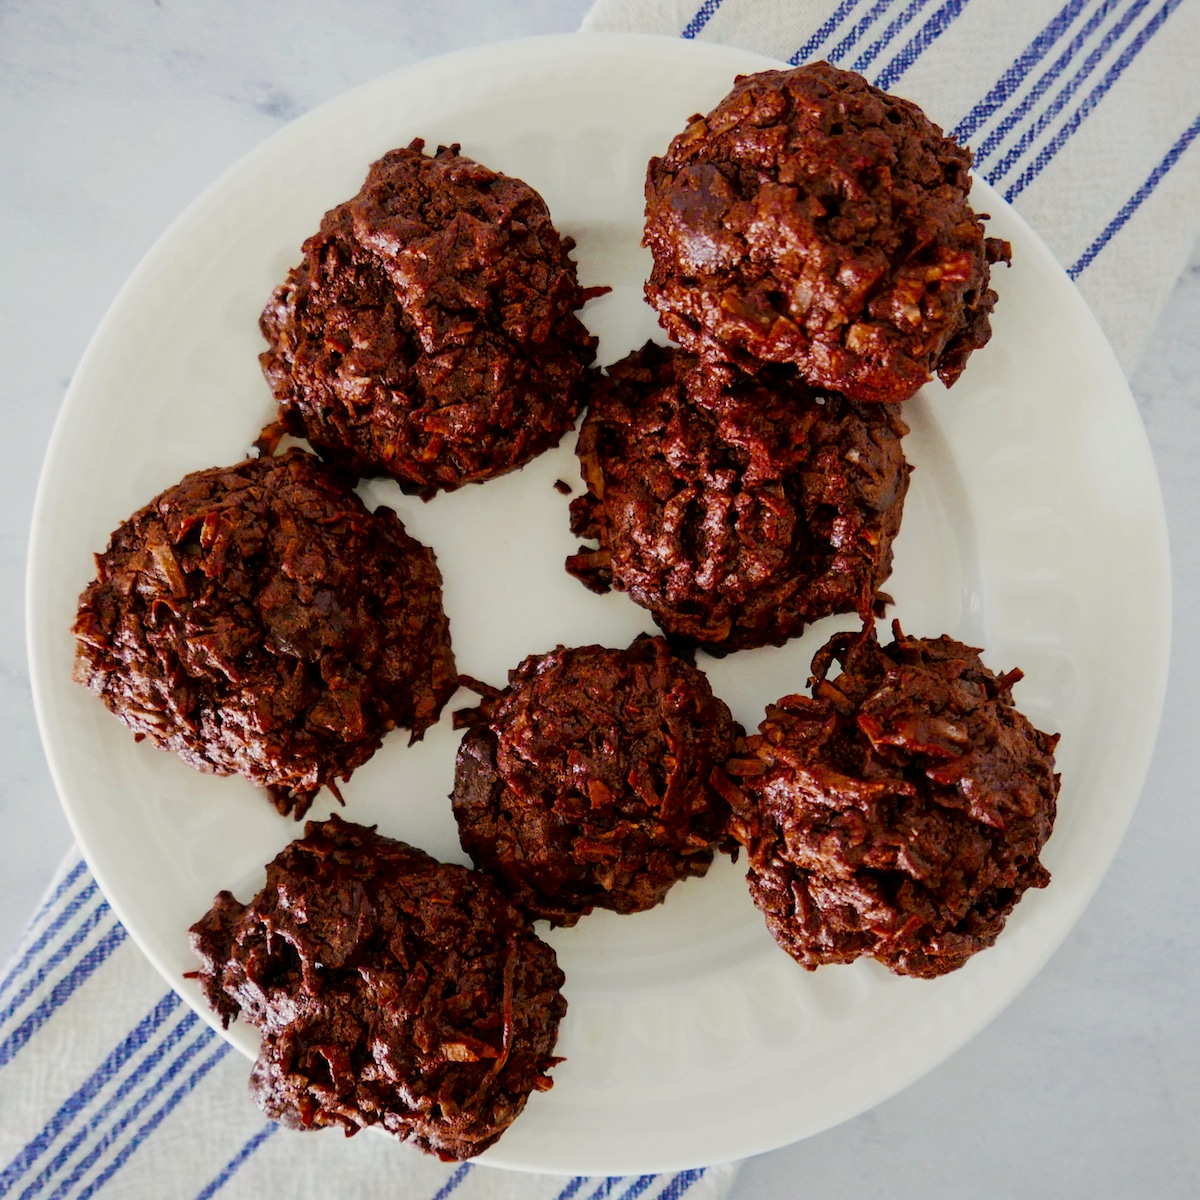 coconut macaroons with chocolate chips on a white plate